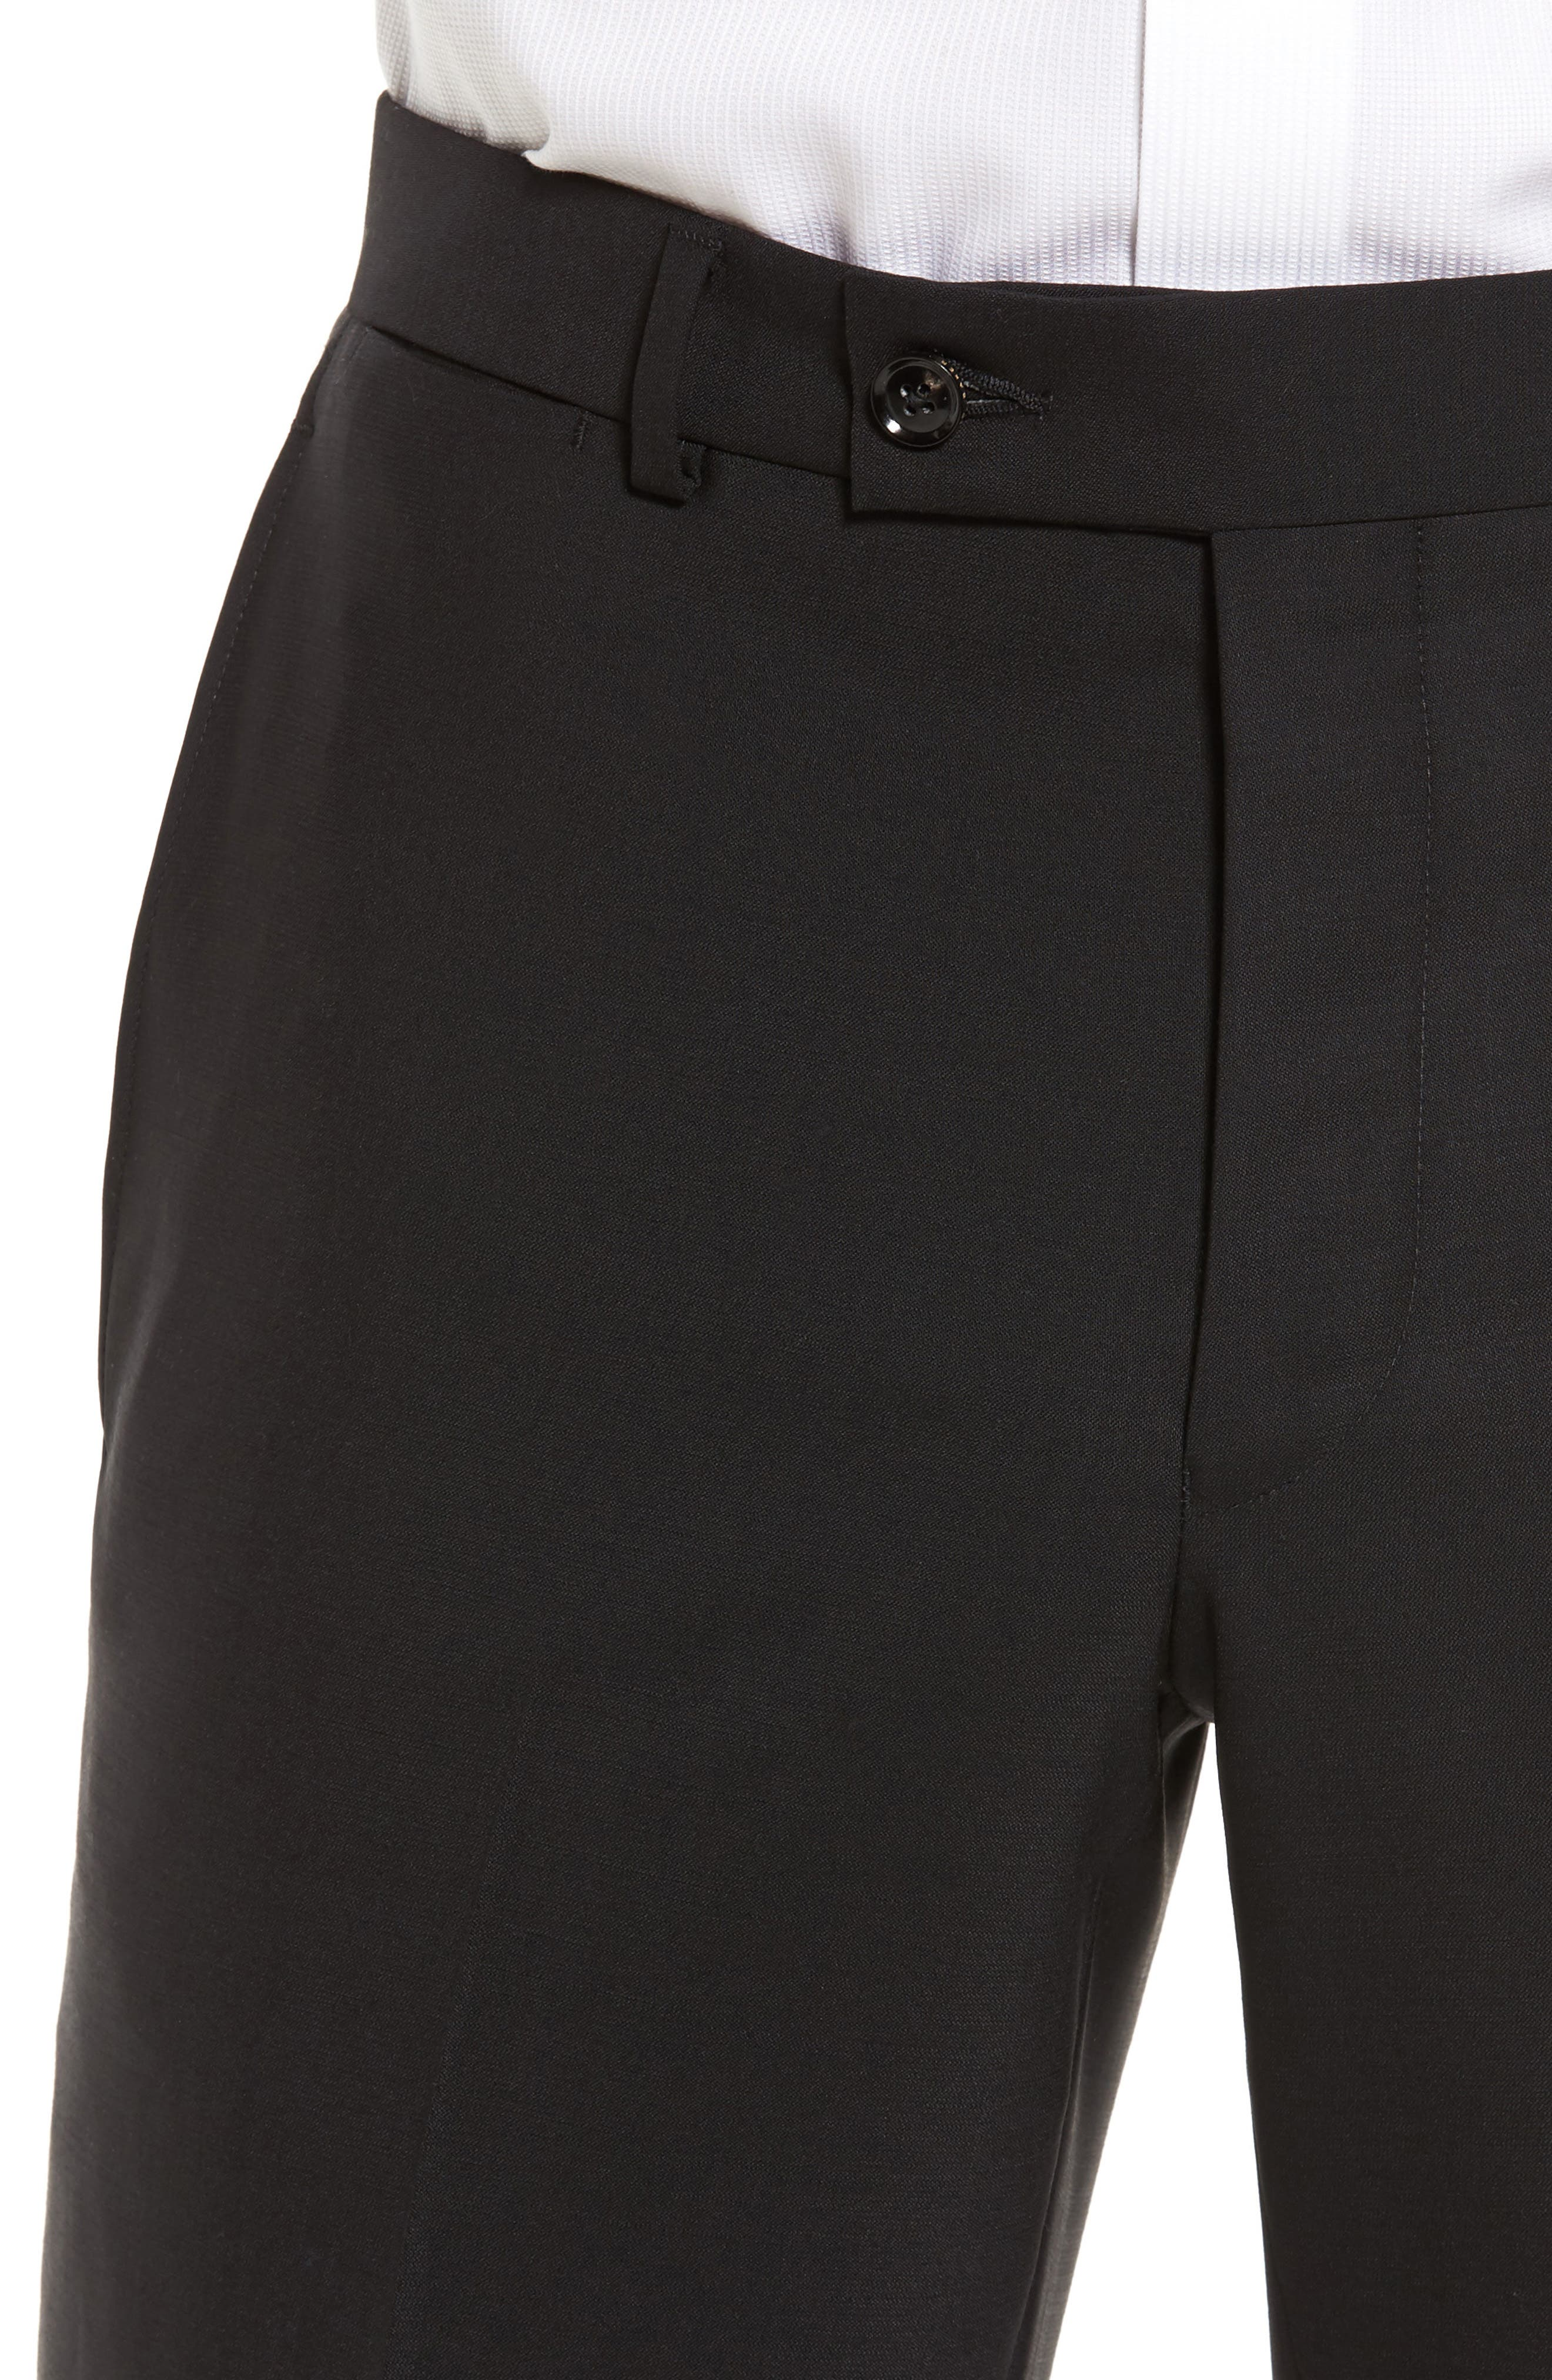 TED BAKER LONDON,                             Jefferson Flat Front Solid Wool Trousers,                             Alternate thumbnail 5, color,                             BLACK